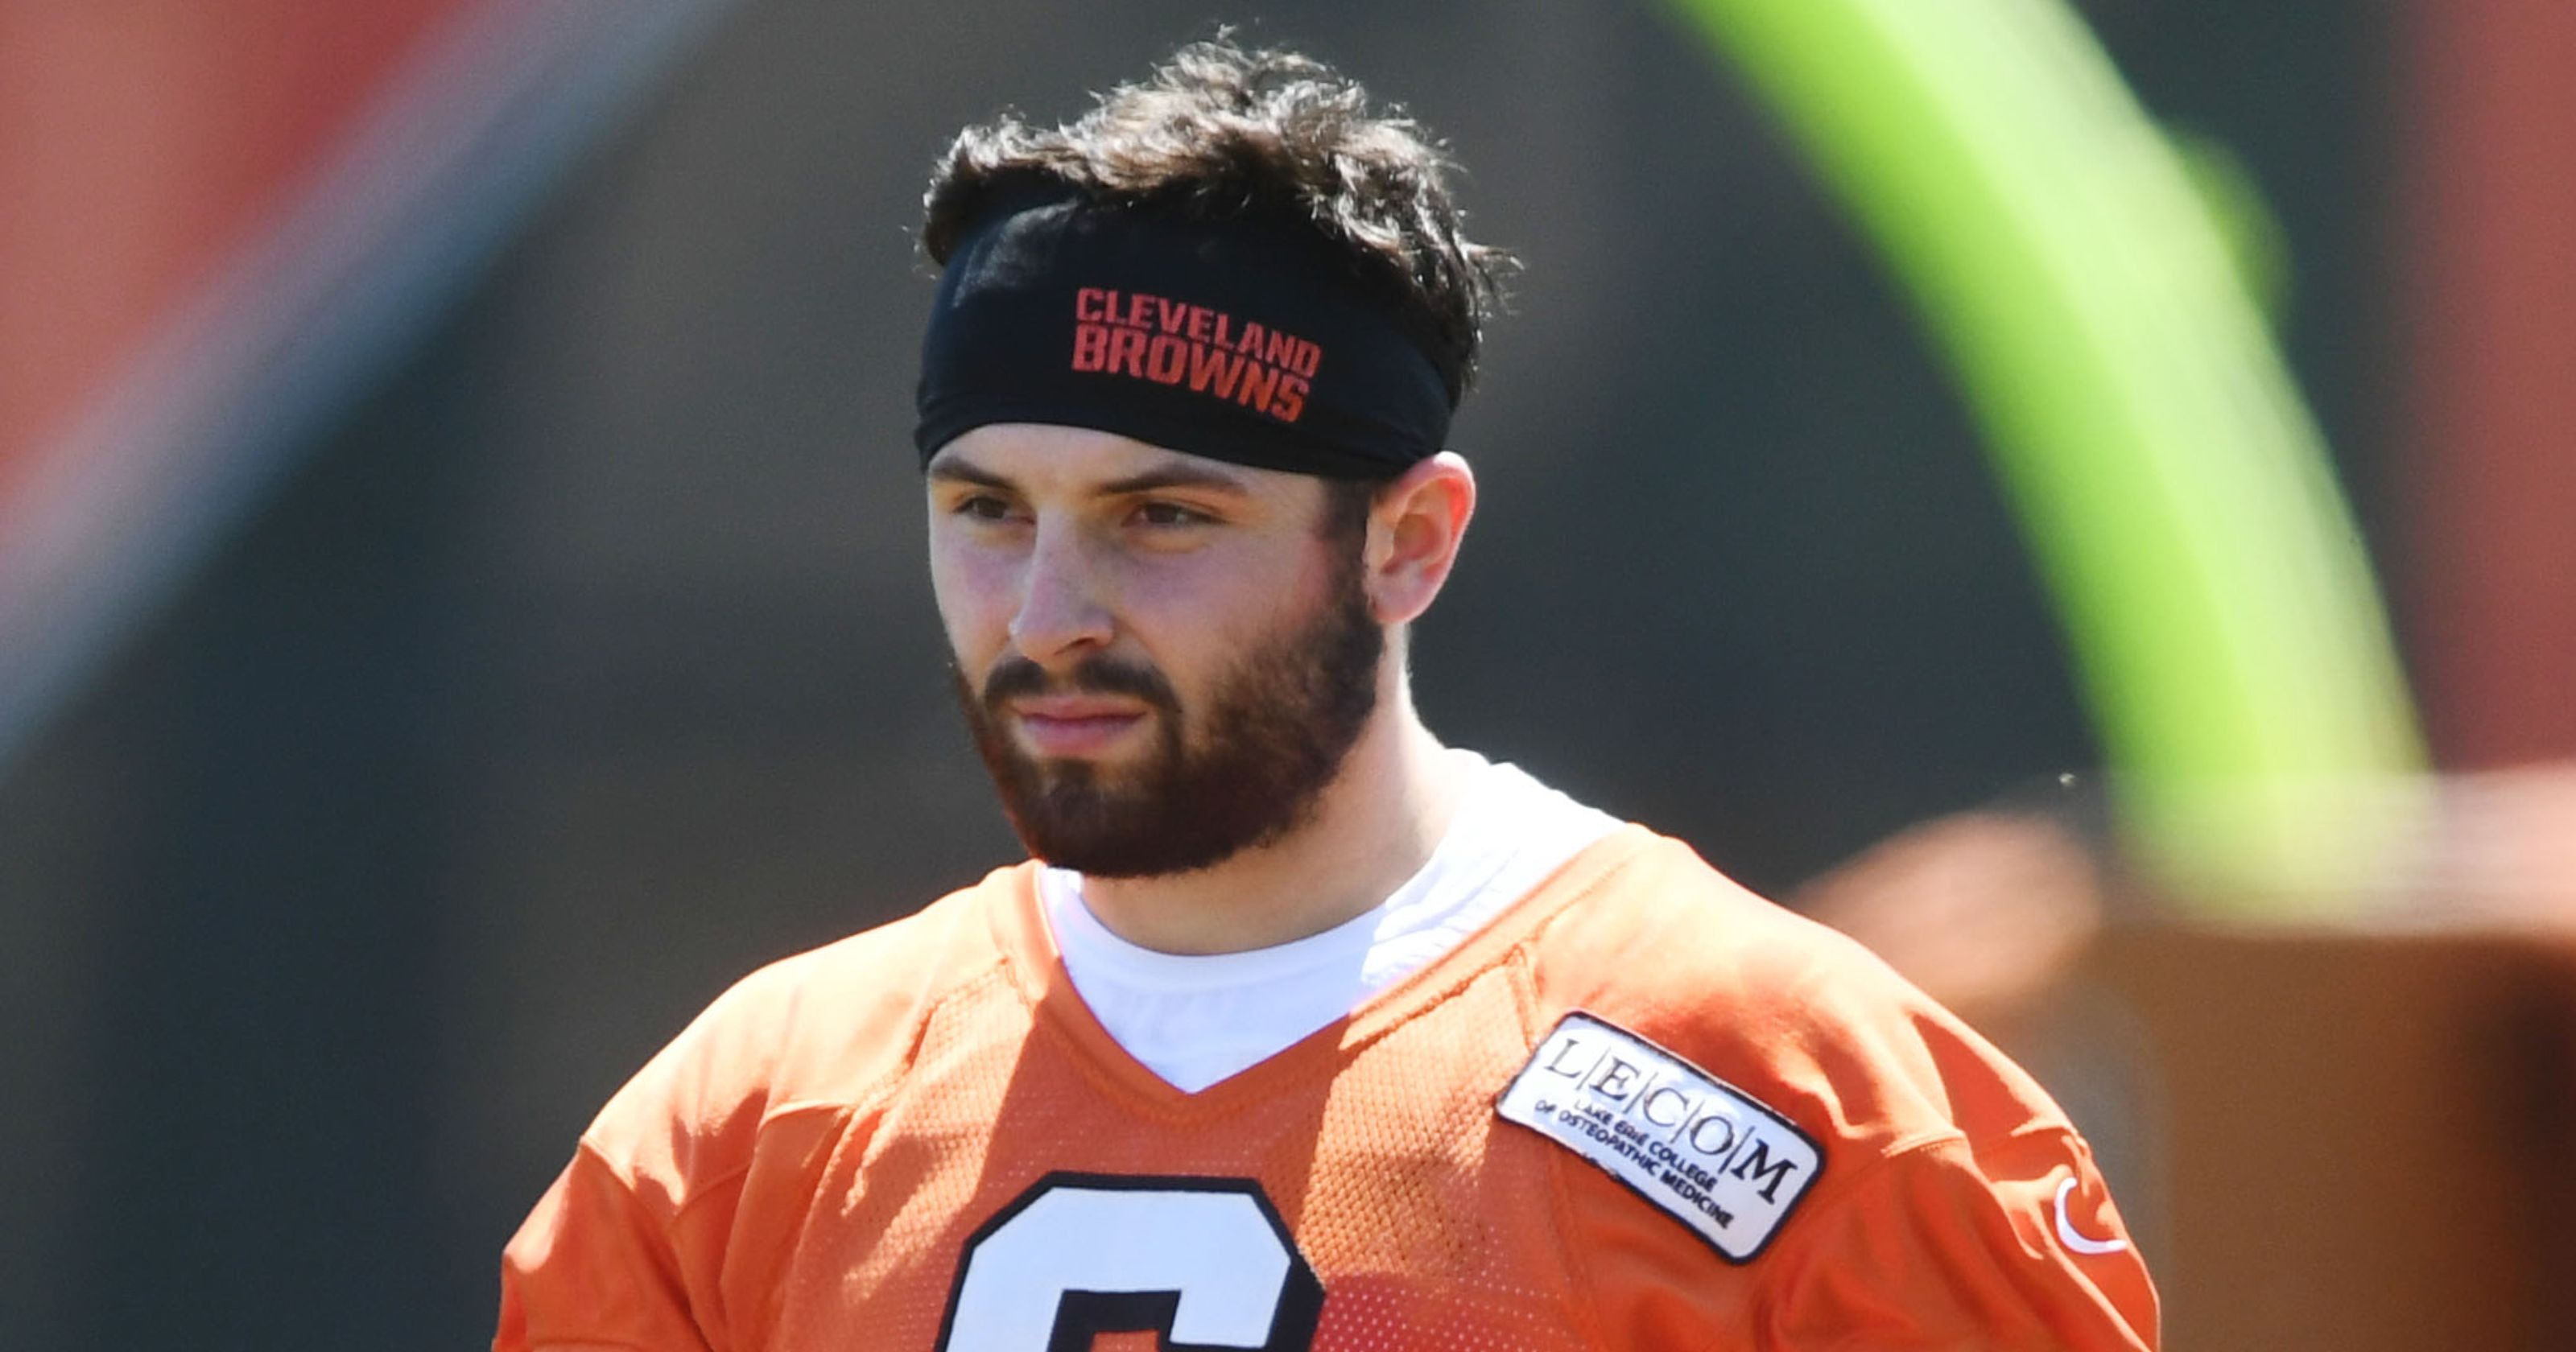 Baker Mayfield has 'a long way to go' Baker mayfield